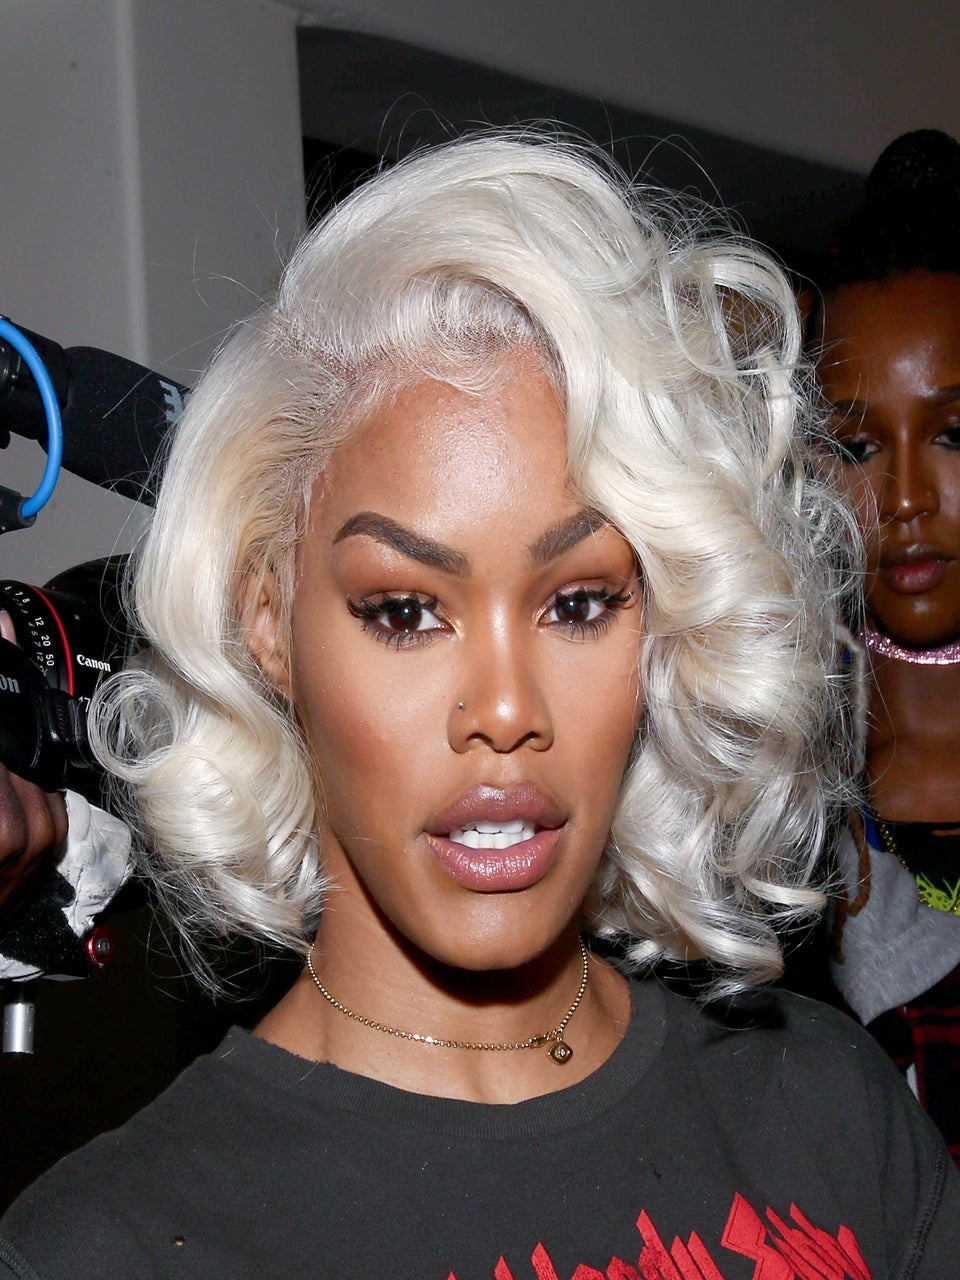 Teyana Taylor Talks Leaving Tour With Jeremih: 'My Name Wasn't Even On The Ticket'